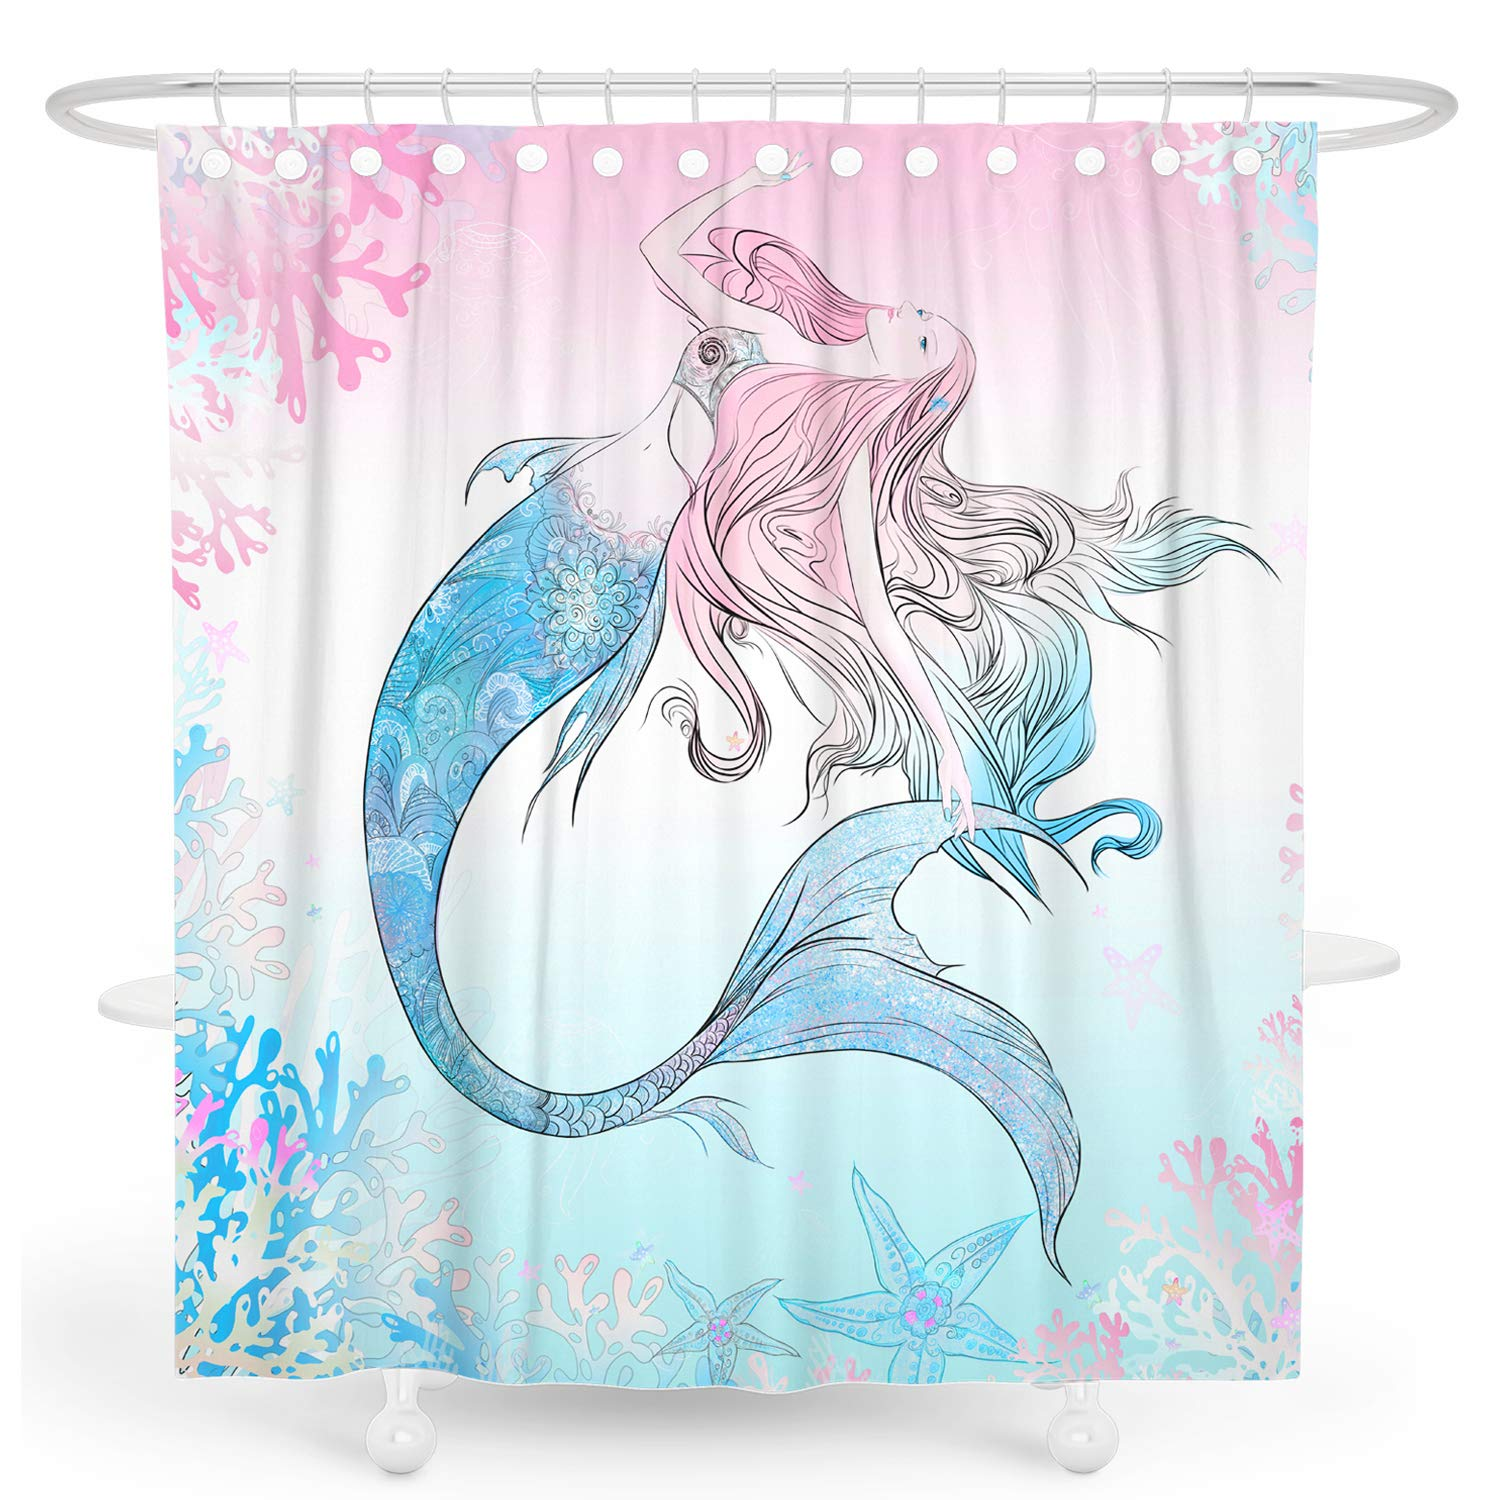 DESIHOM Mermaid Shower Curtain Ocean Shower Curtain Pink Girls Shower Curtain Spring